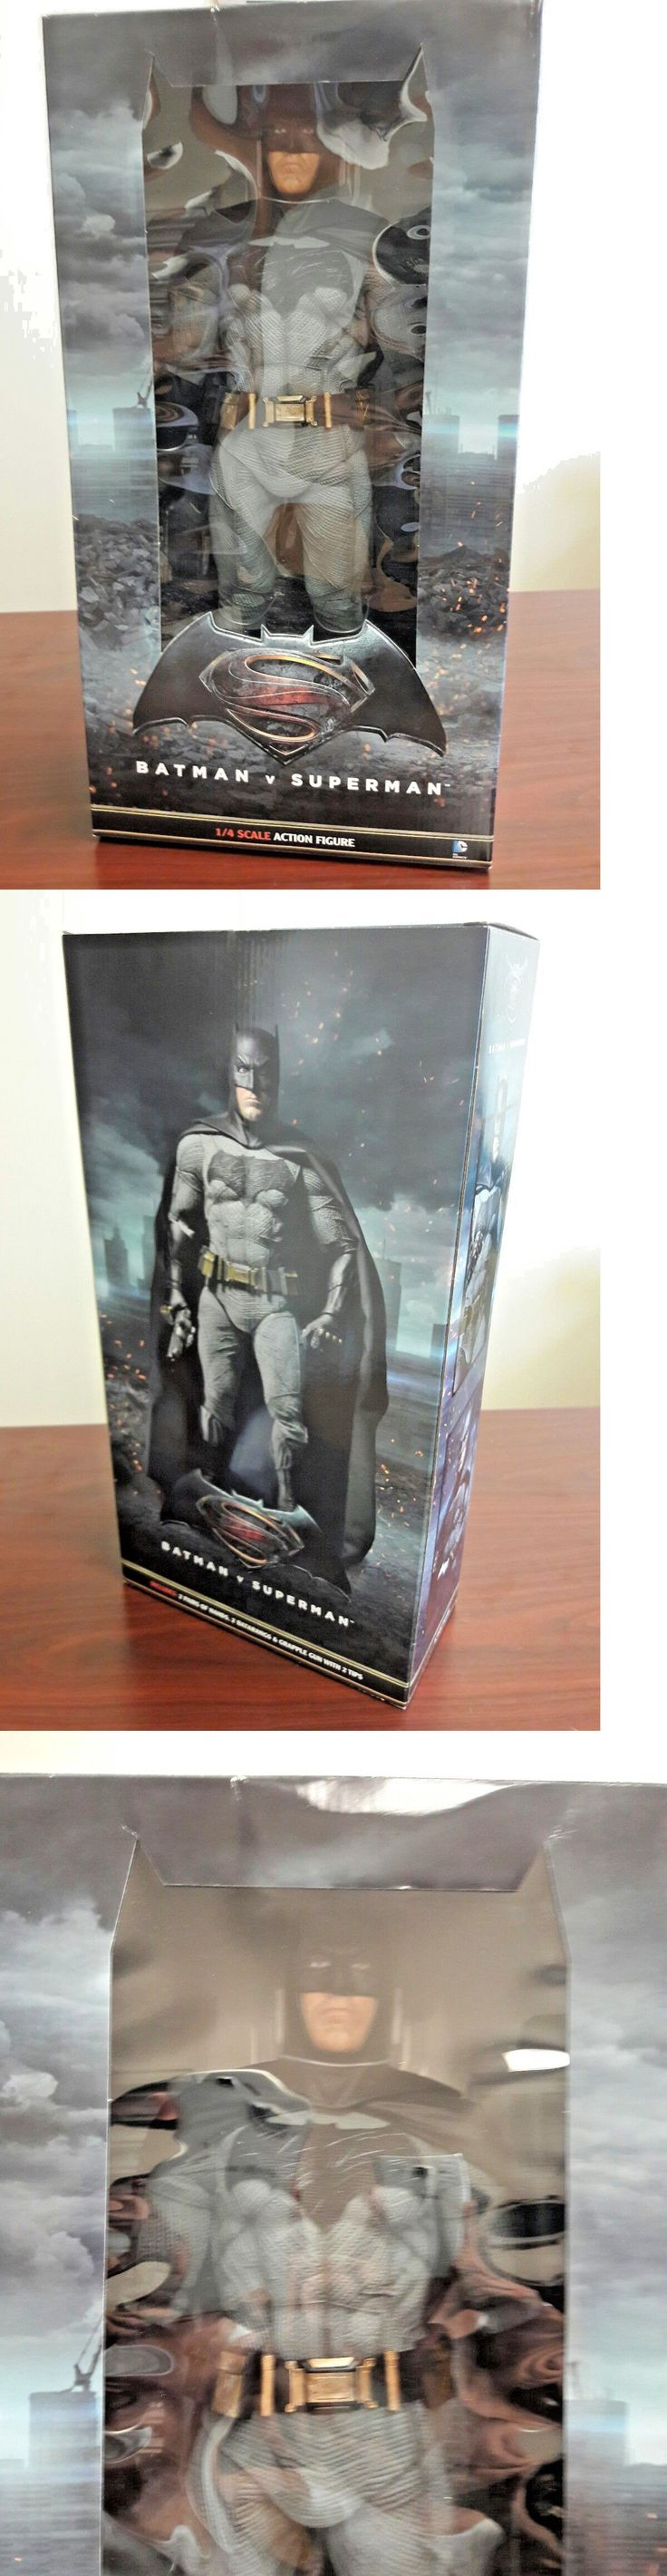 TV Movie and Video Games 75708: Neca 1 4 Scale Batman Vs. Superman 18 Movie Figure Brand New -> BUY IT NOW ONLY: $98.95 on eBay!